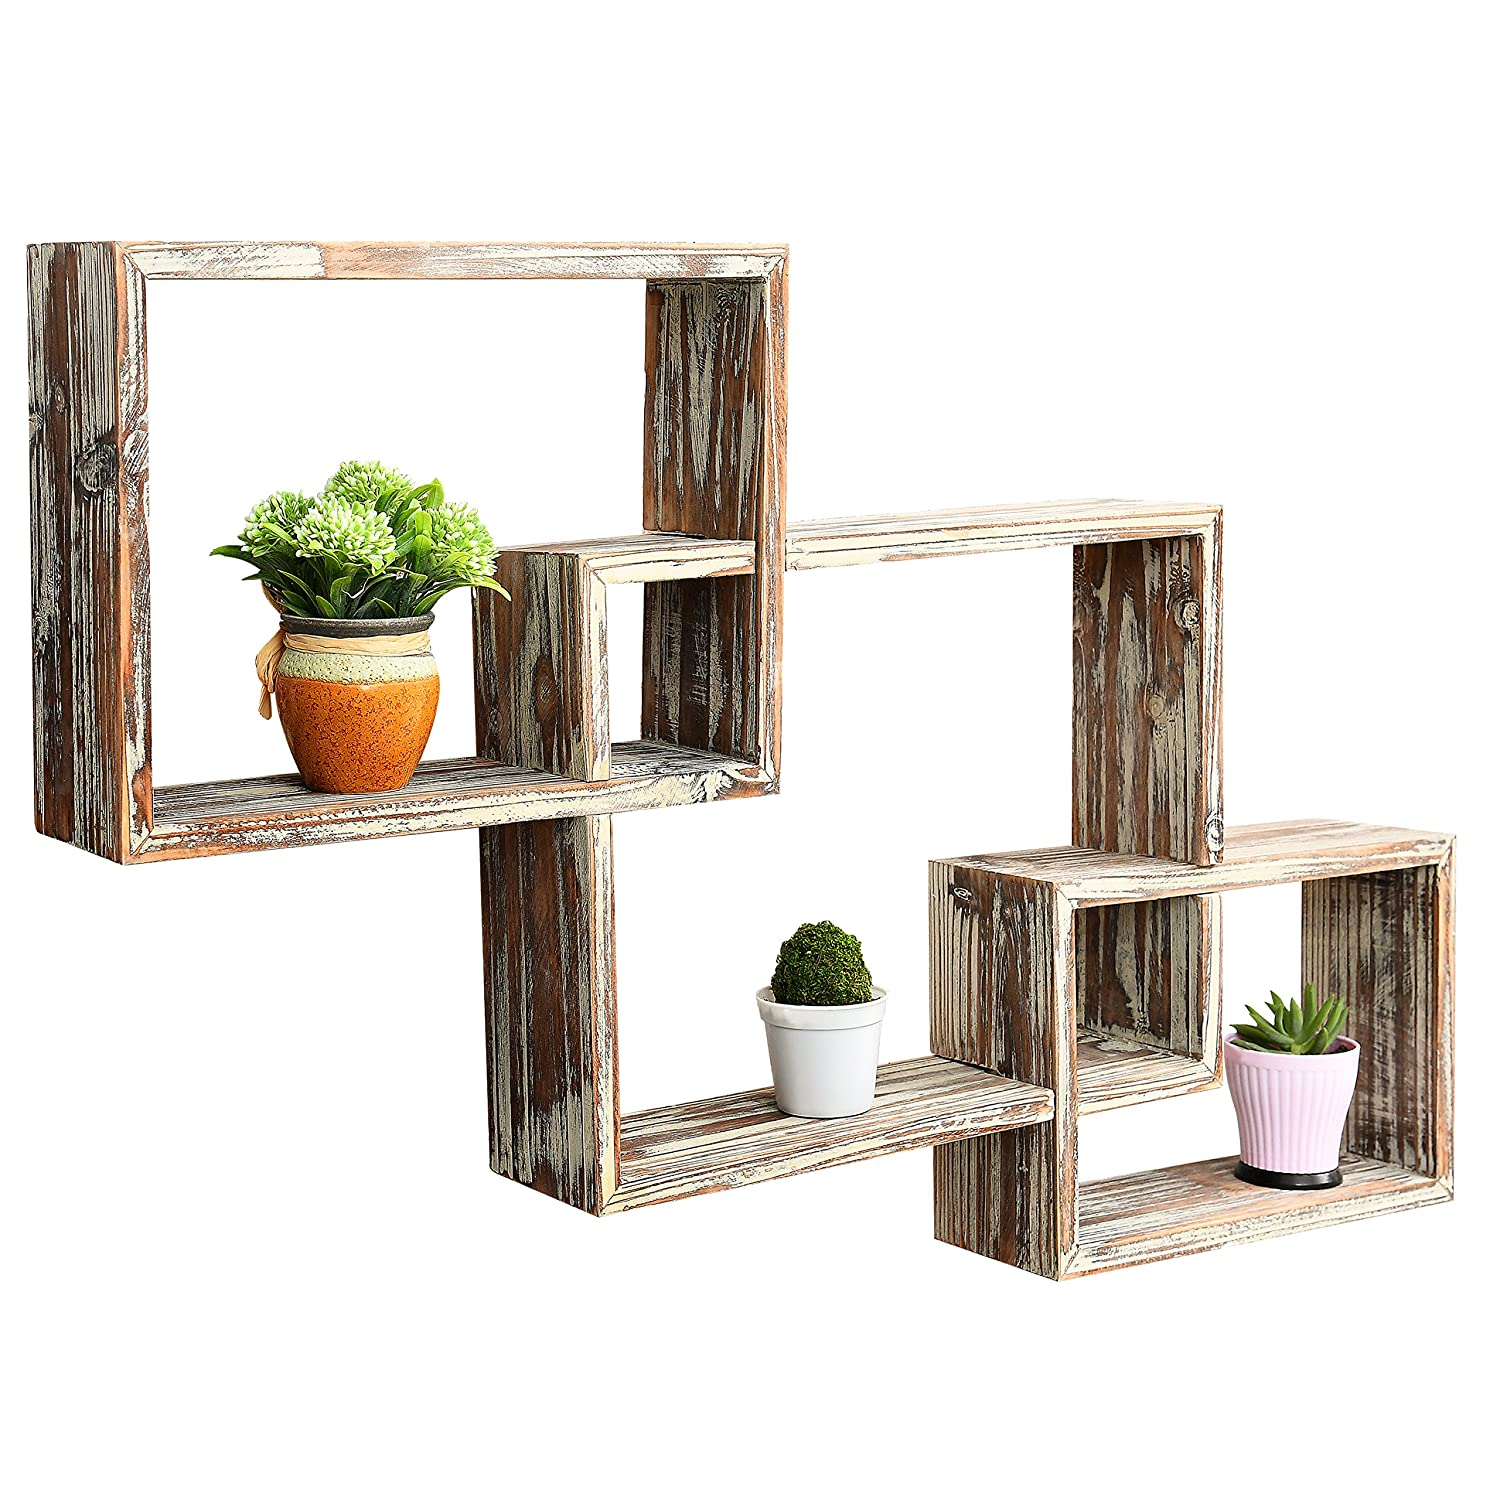 Mygift Wall-mounted Country Rustic Brown Interlocking Shadow Box, Floating  Box Display Shelves, Set Of 3